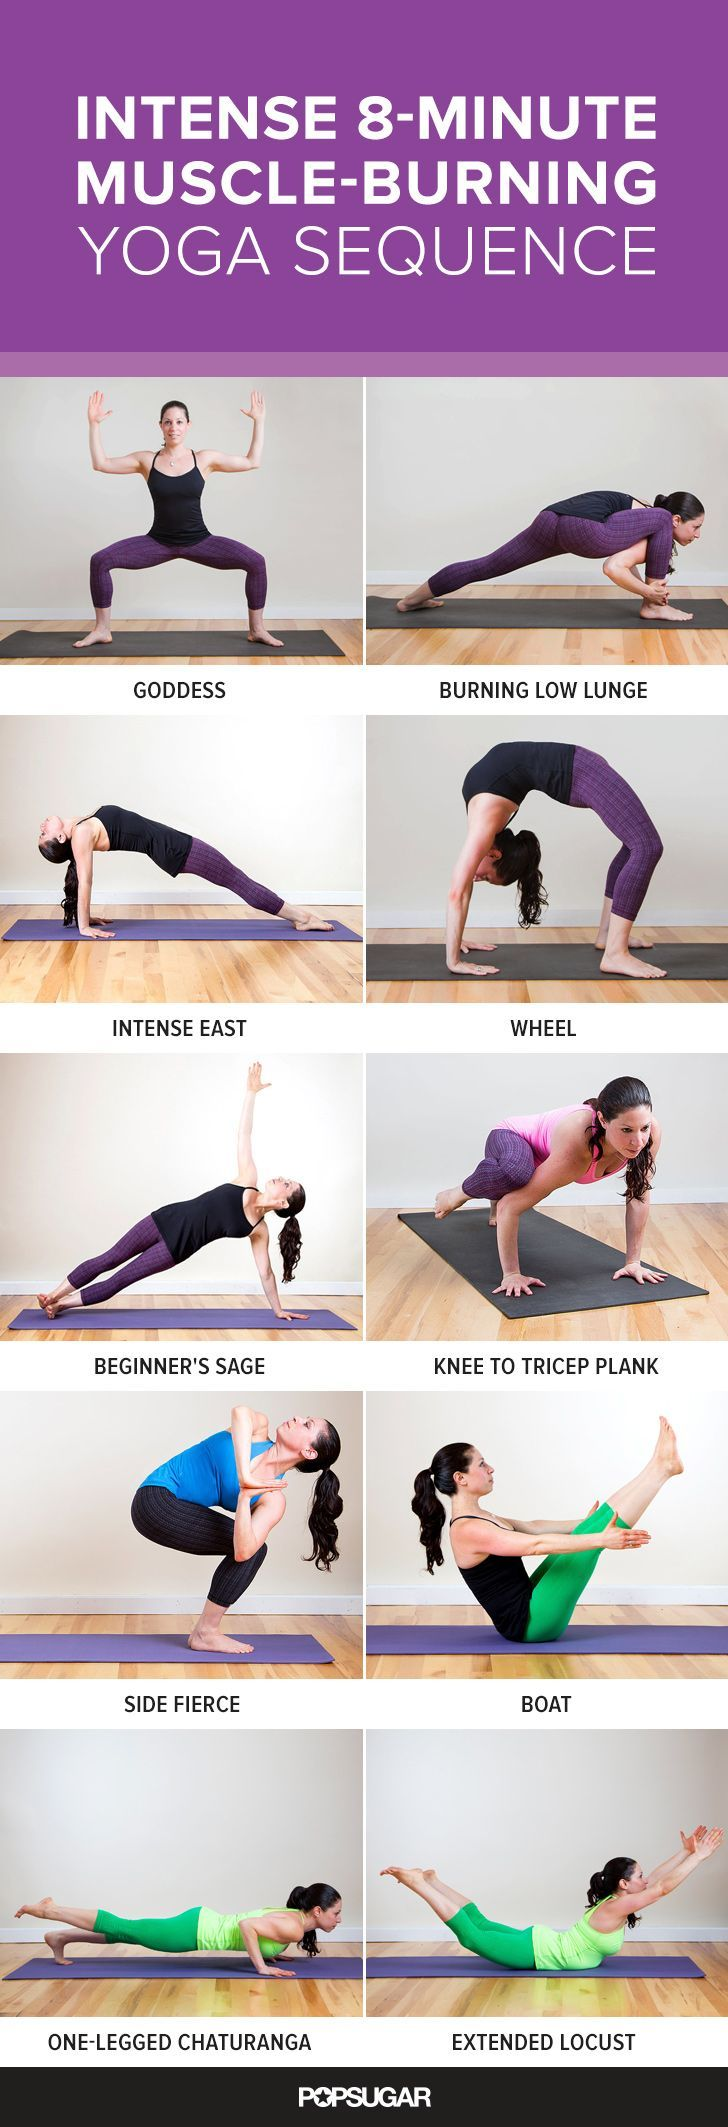 Yoga isnt always about relaxing, restorative poses. Feel your muscles burn with this 8-minute workout